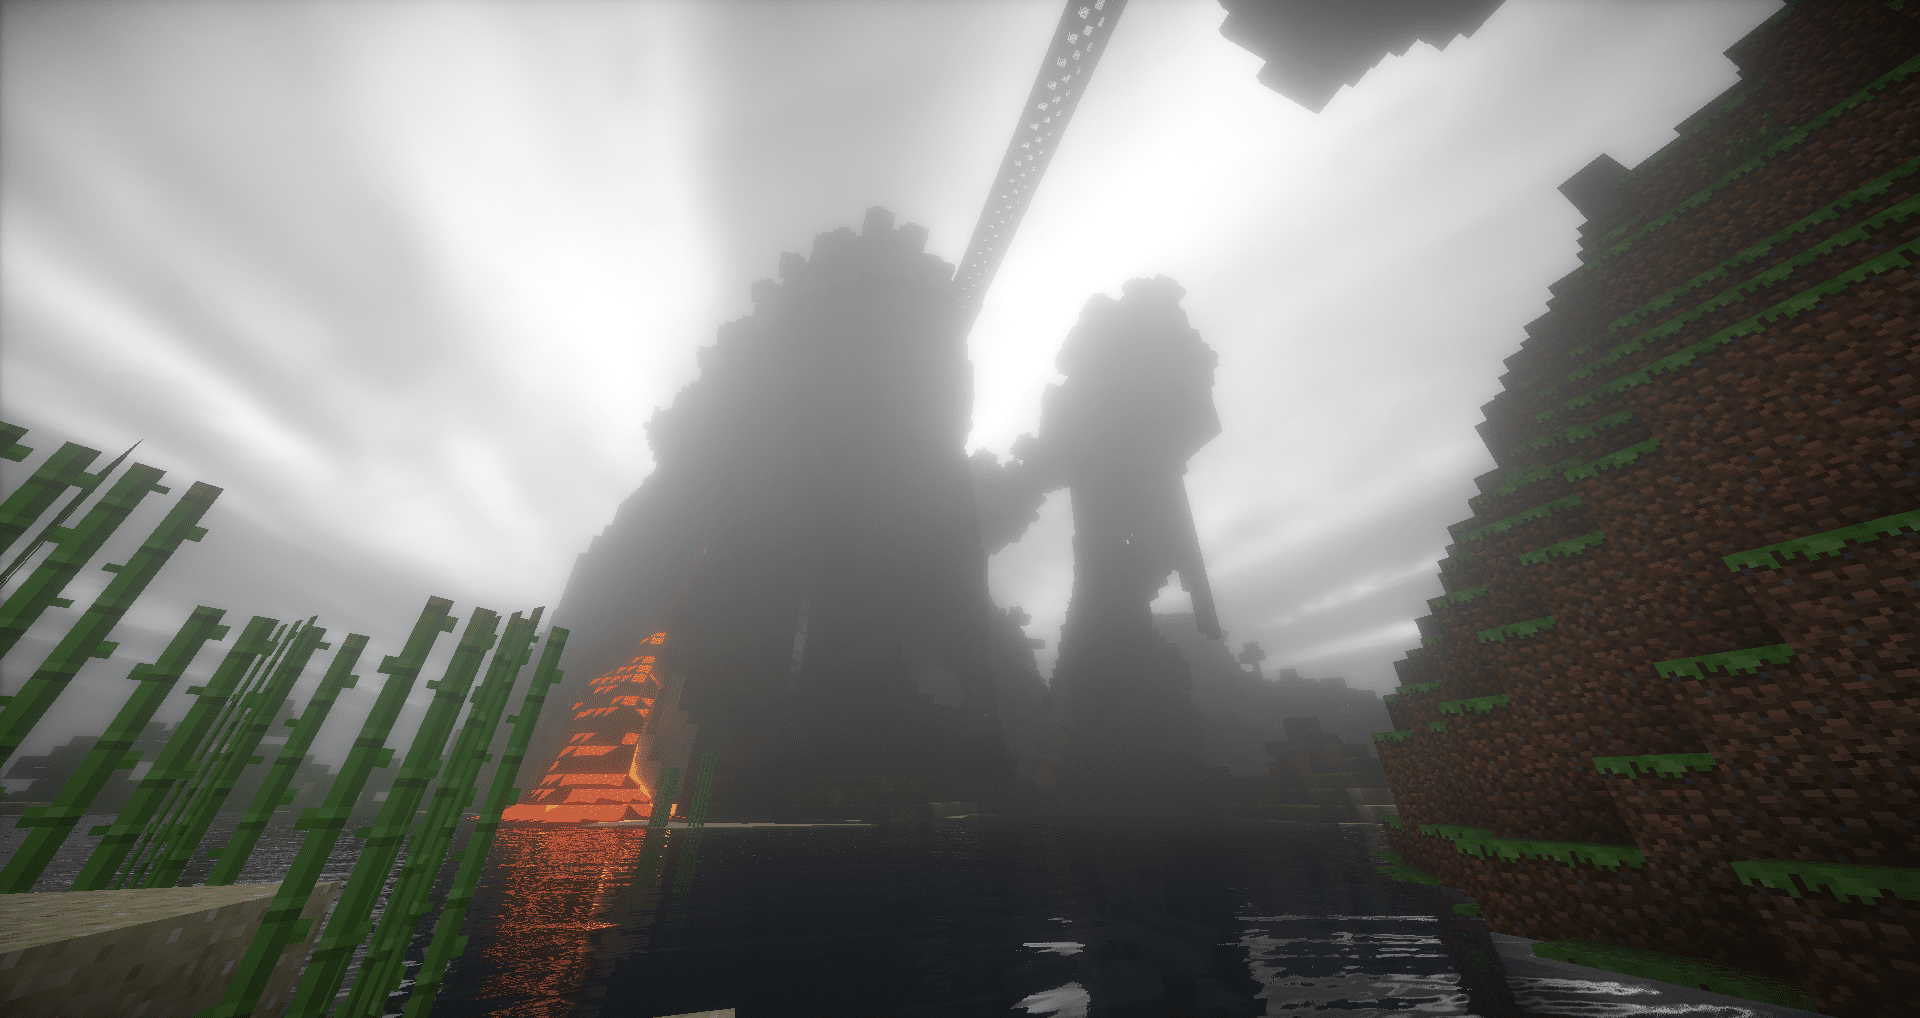 Minecraft viewed with a shader mod.